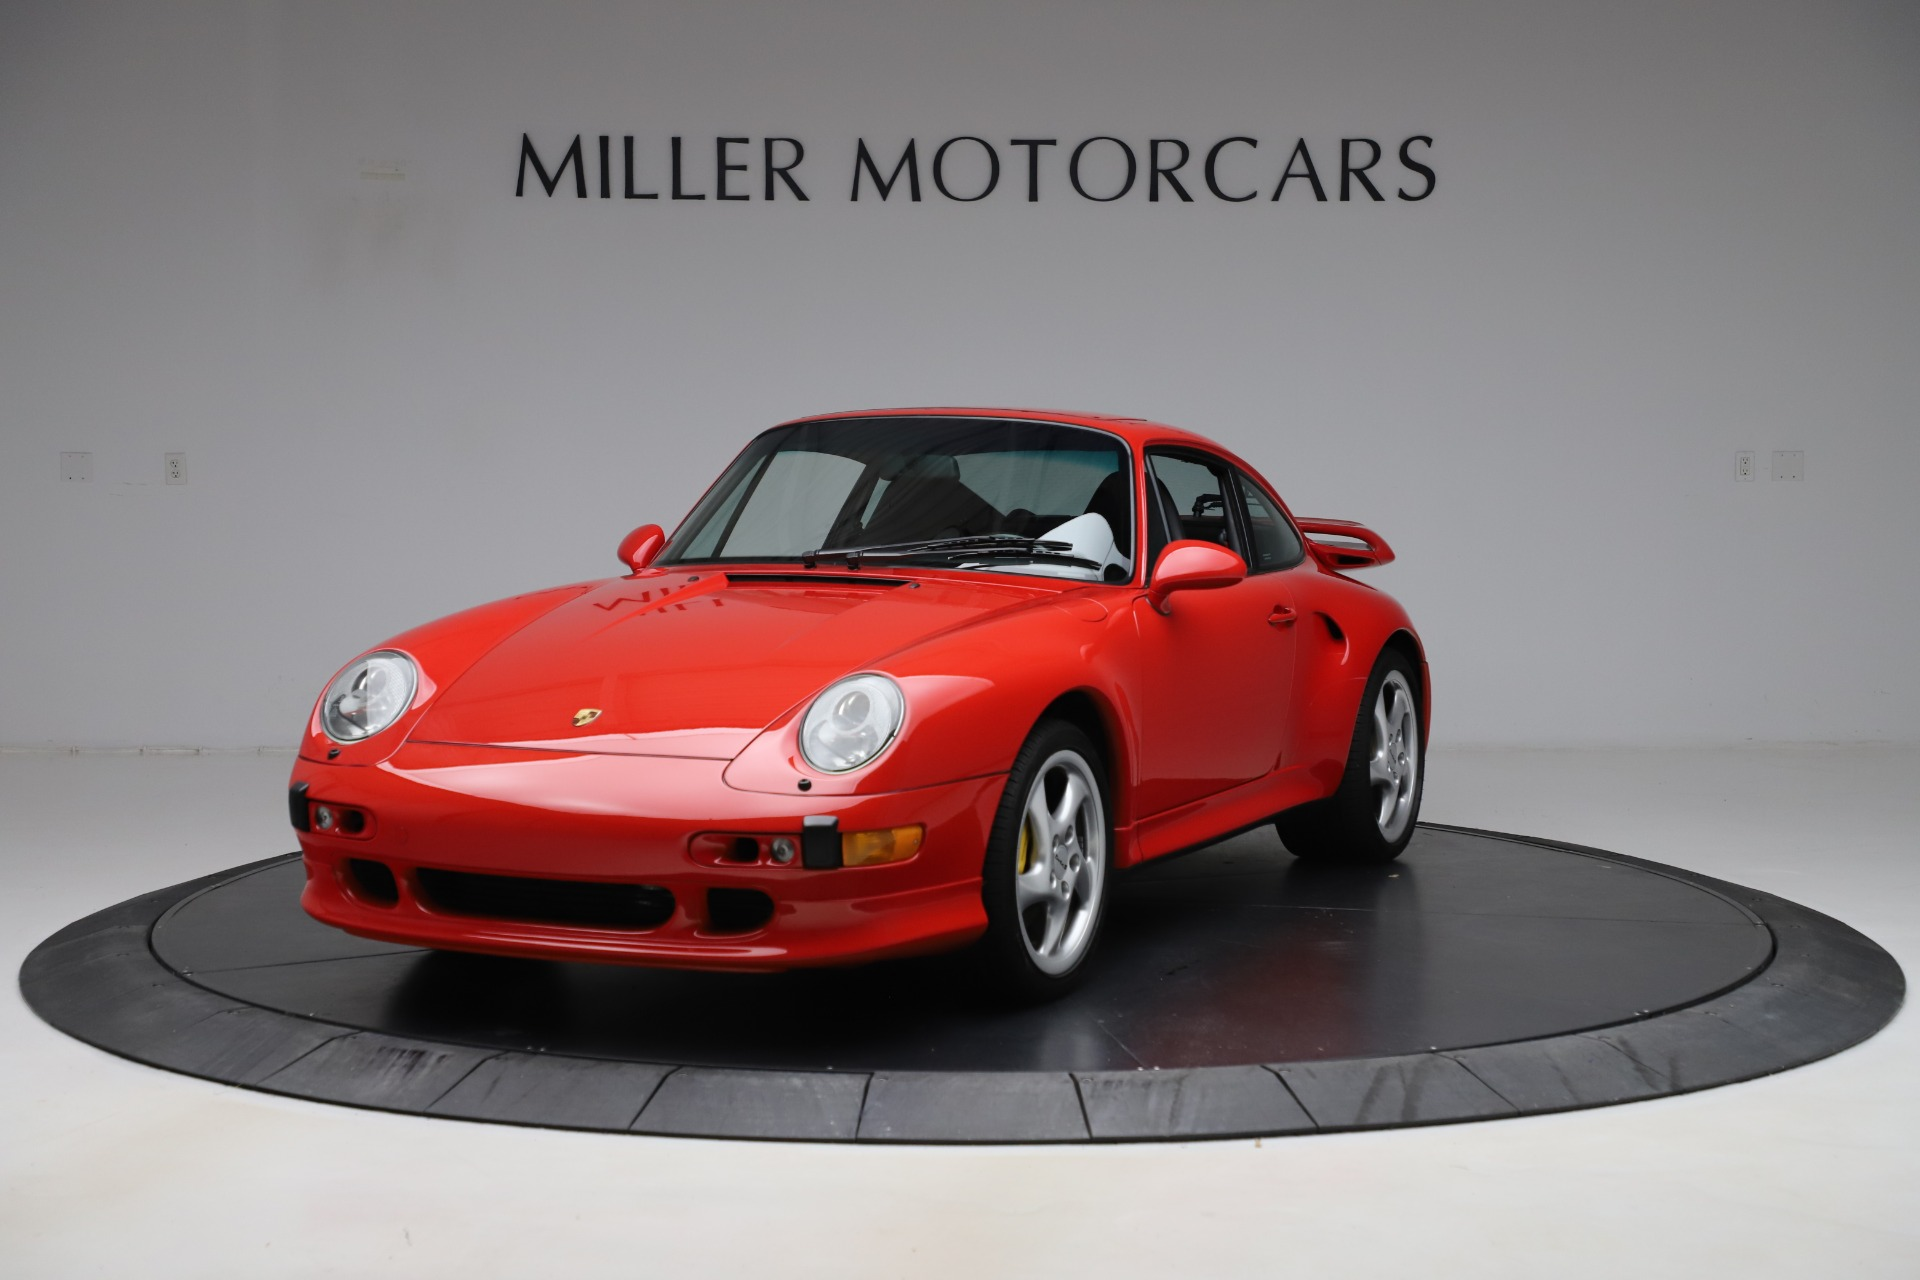 Used 1997 Porsche 911 Turbo S for sale $419,900 at Aston Martin of Greenwich in Greenwich CT 06830 1